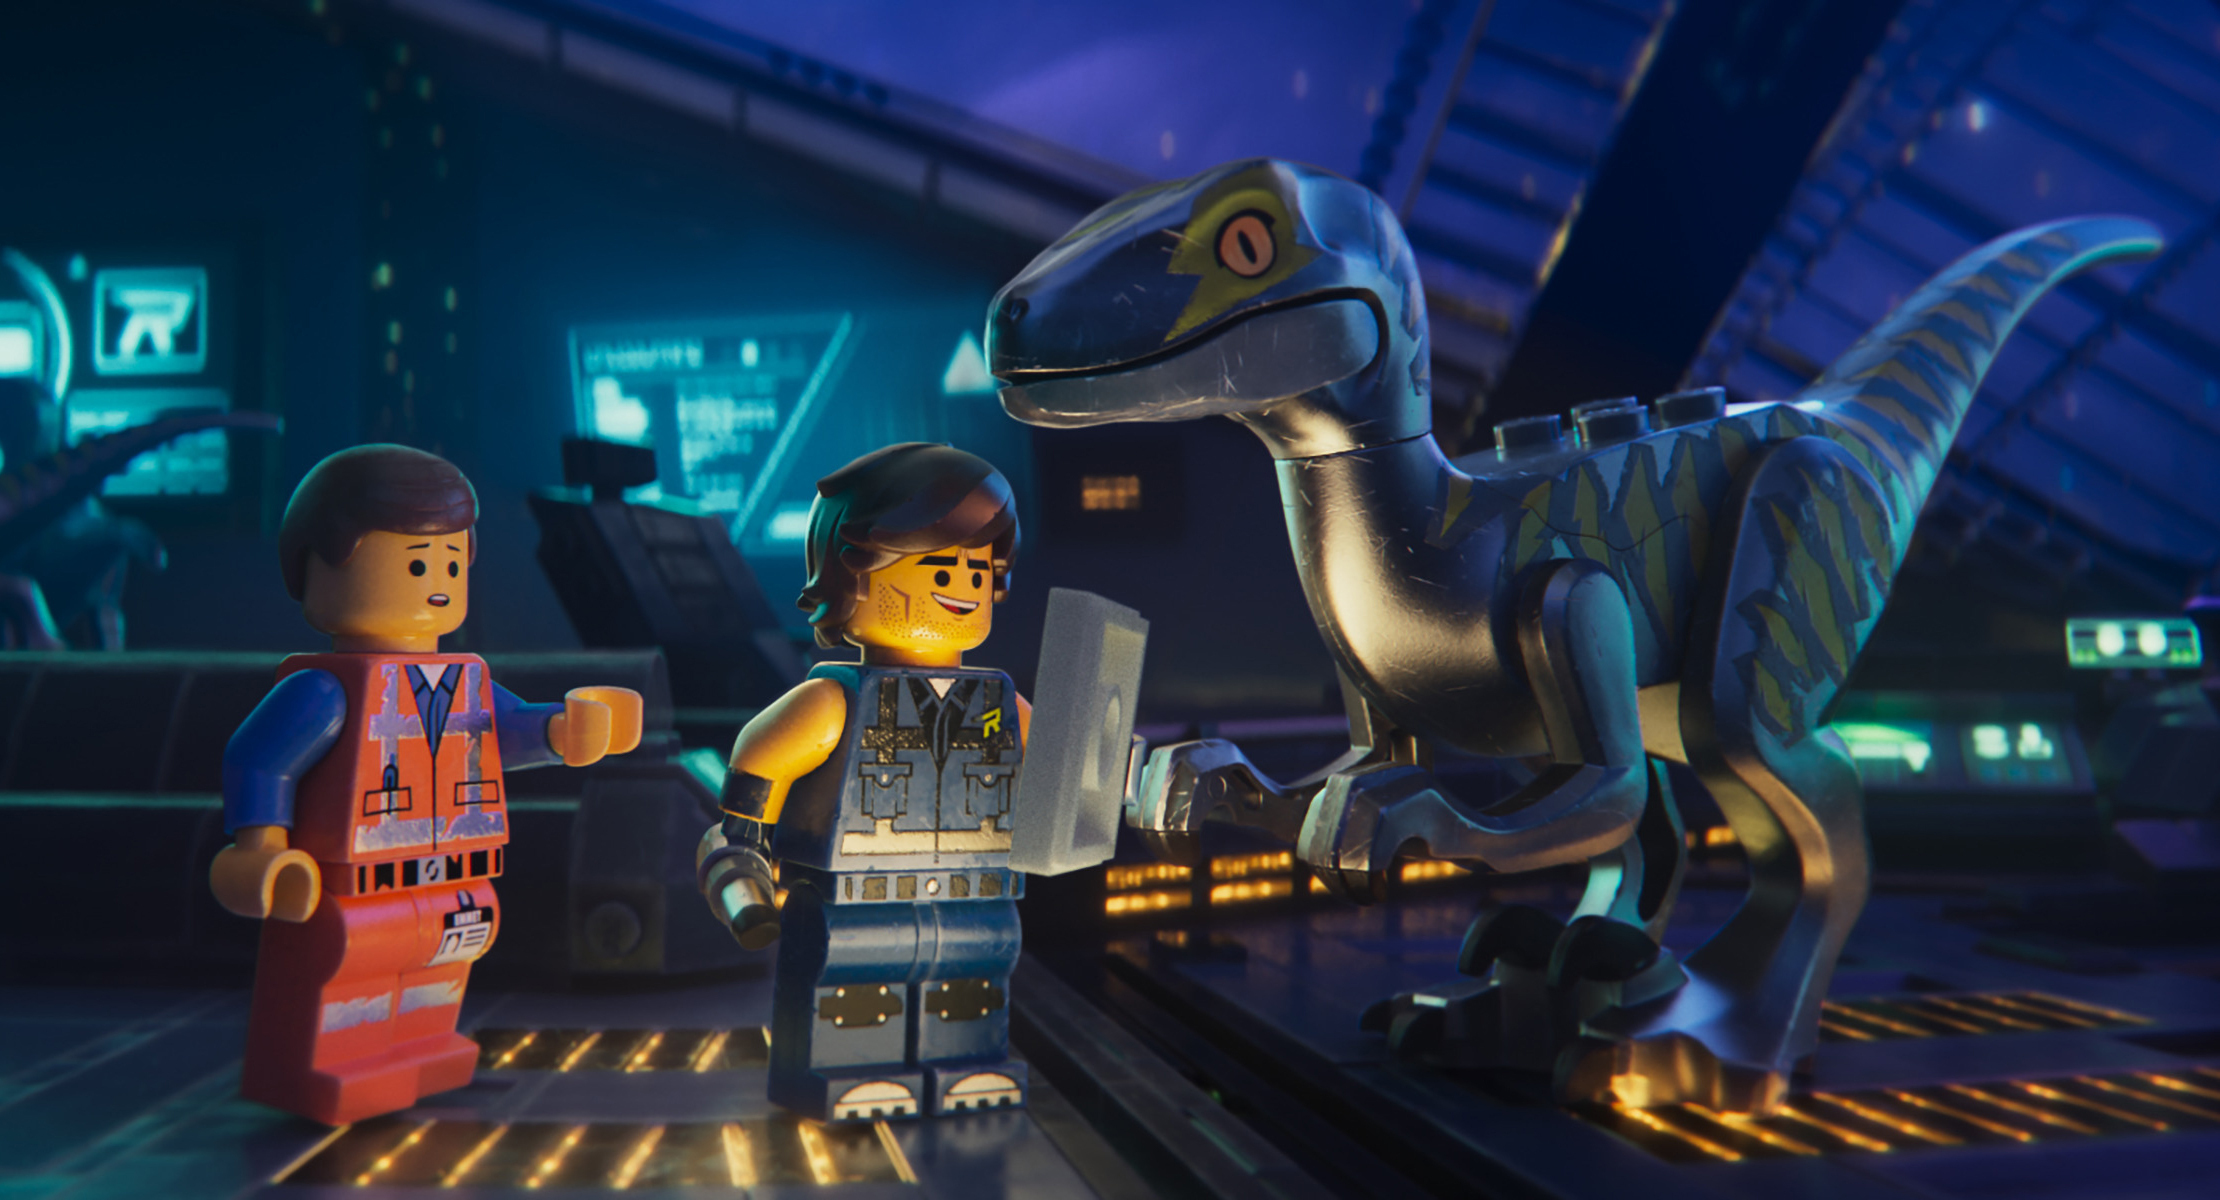 The Lego Movie 2 The Second Part Film Box Office  _1549851699718